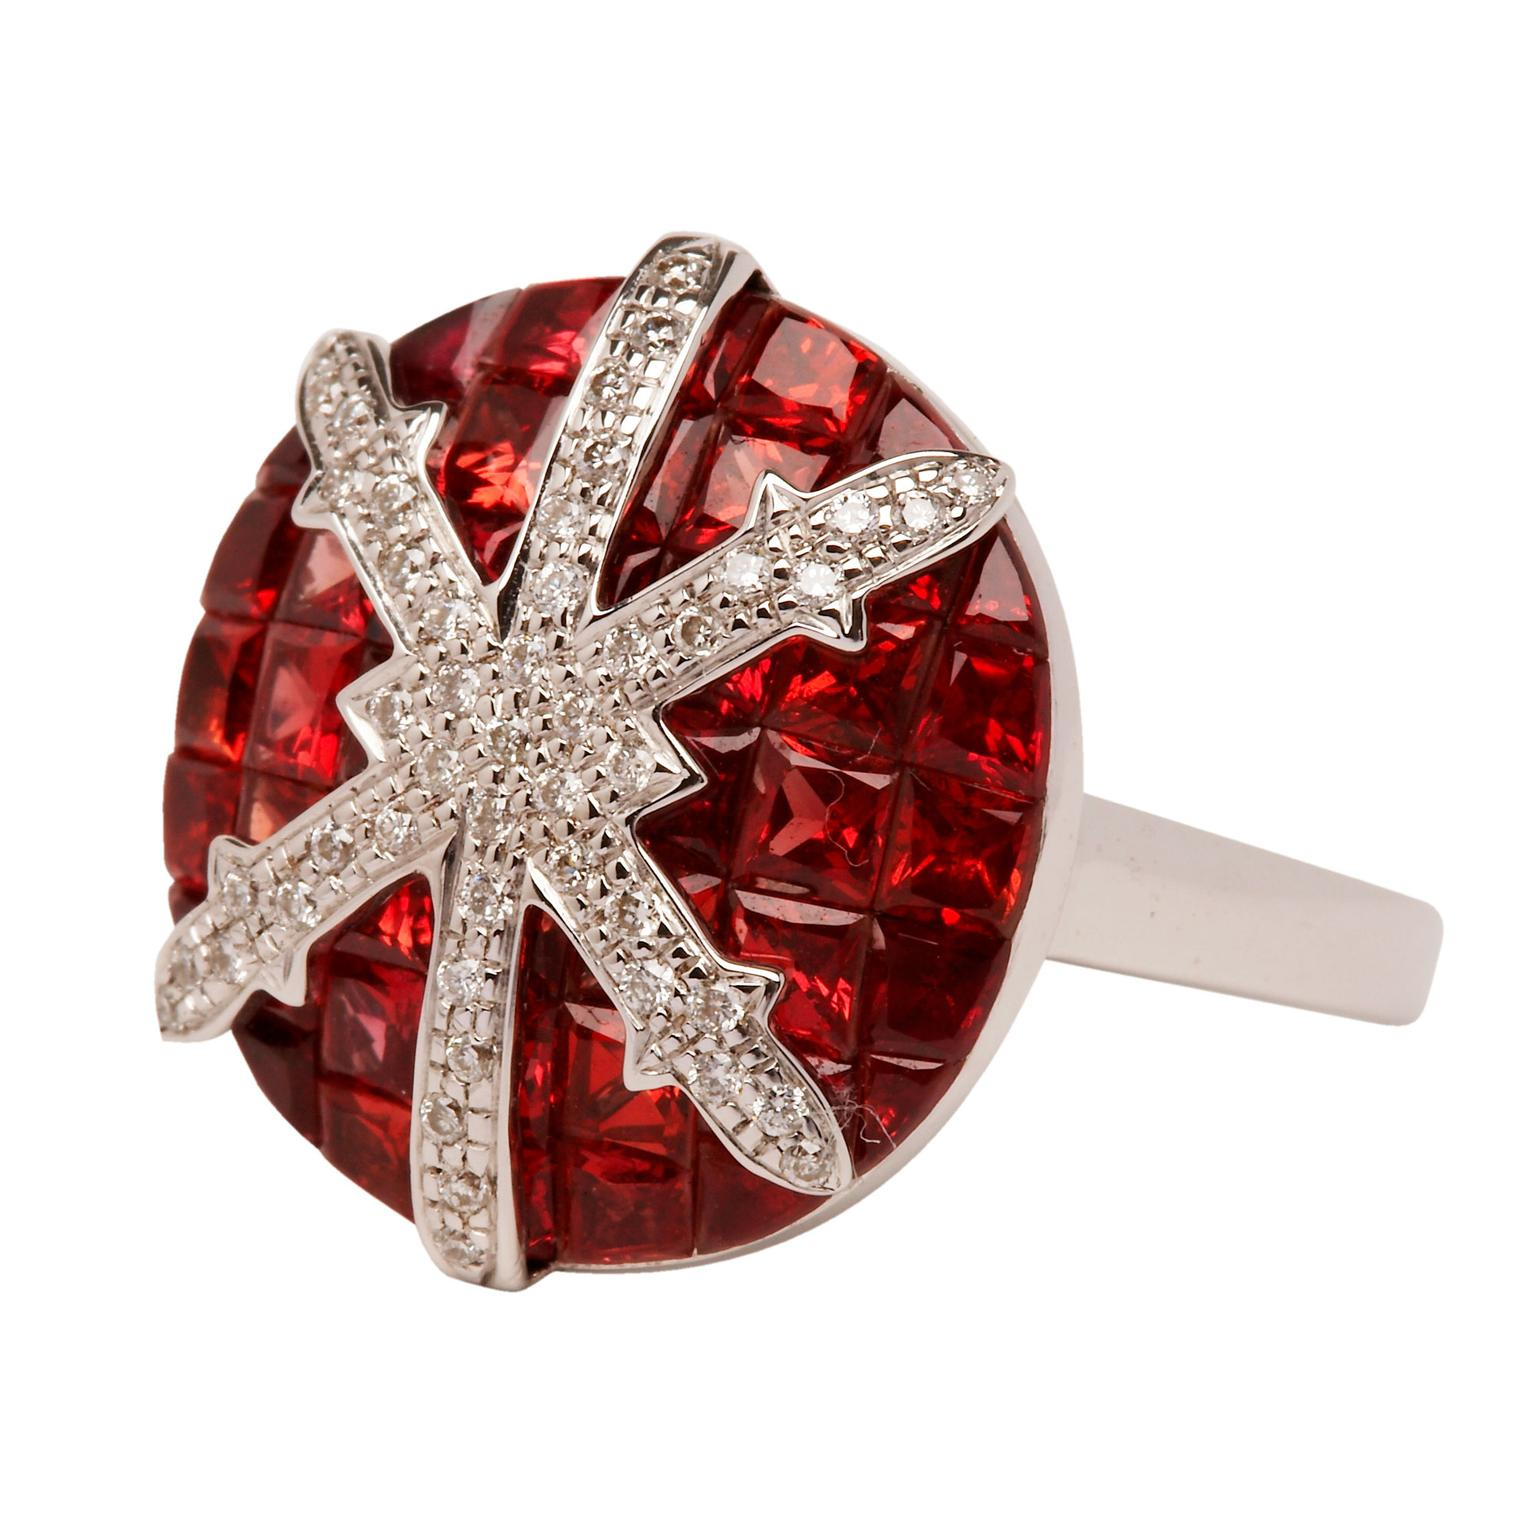 Stenmark red sapphire and white diamond ring